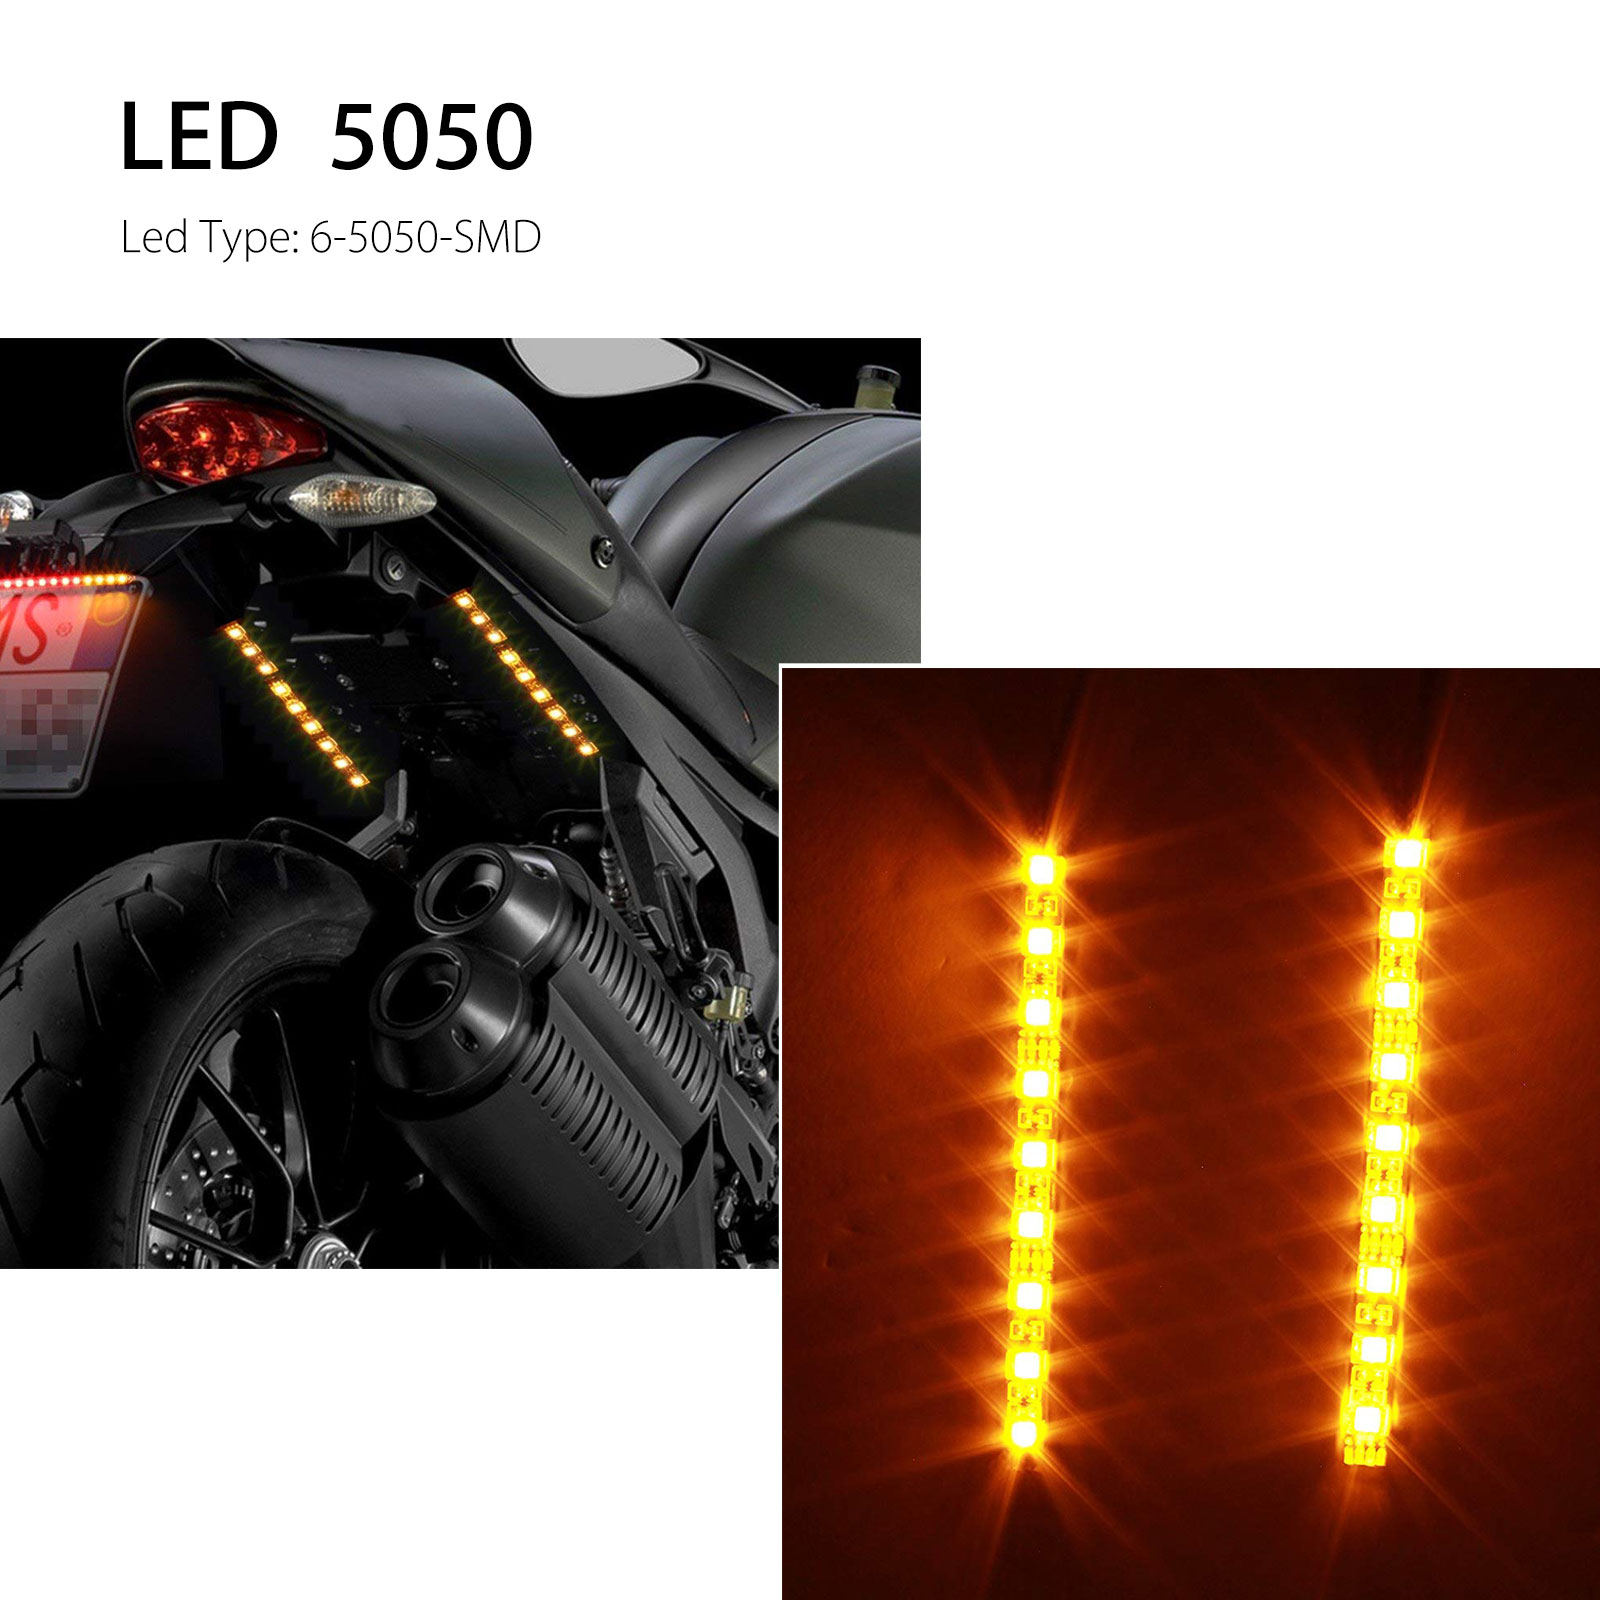 2x-4-034-Motorcycle-Flexible-Strip-Blinker-Flasher-Front-Rear-Turn-Signal-6LED-Amber